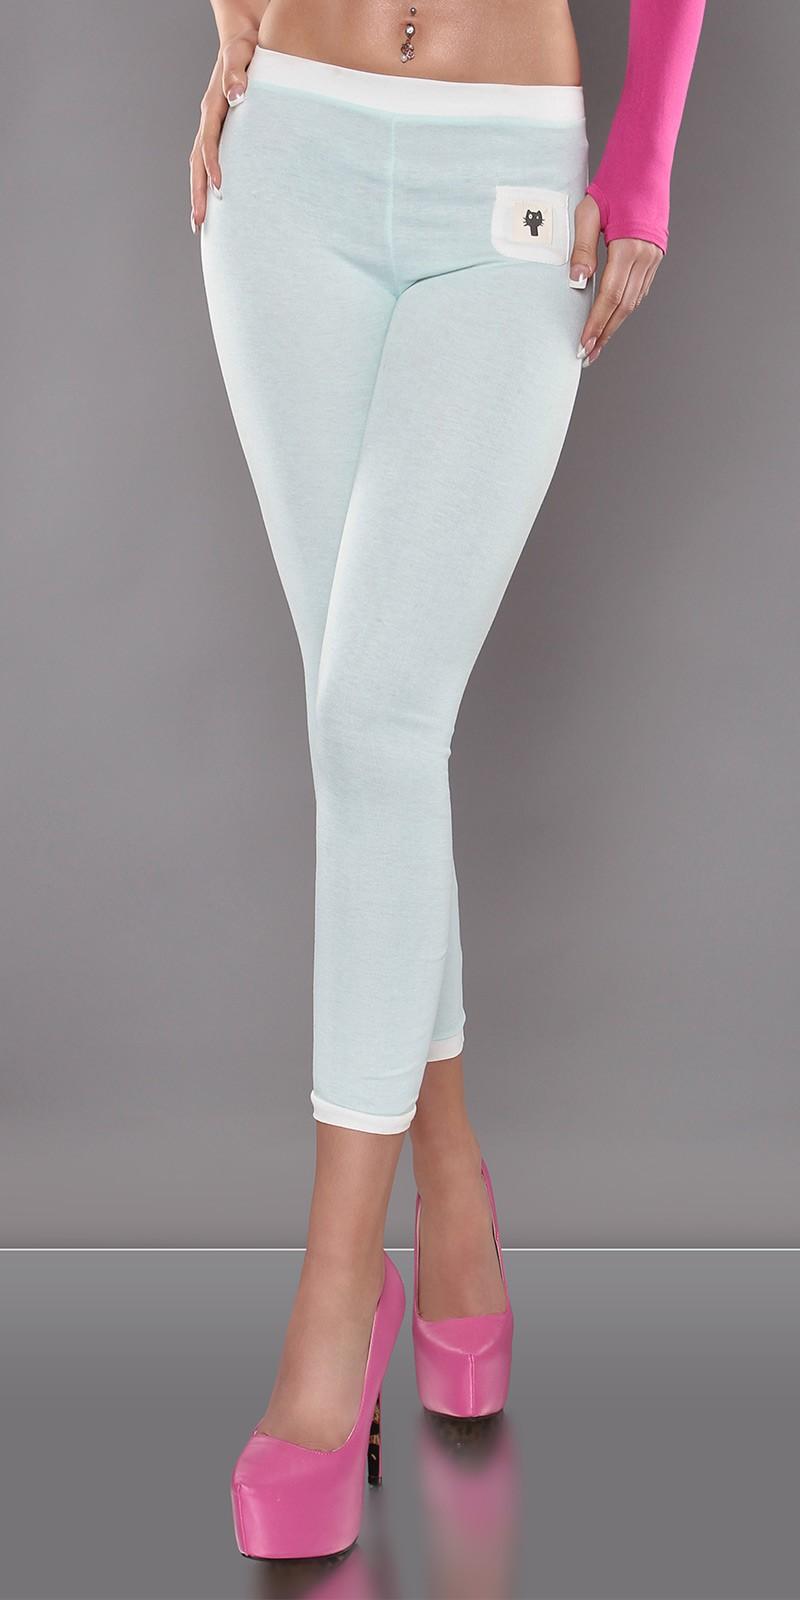 7/8 capri leggings - Menta (L/XL)